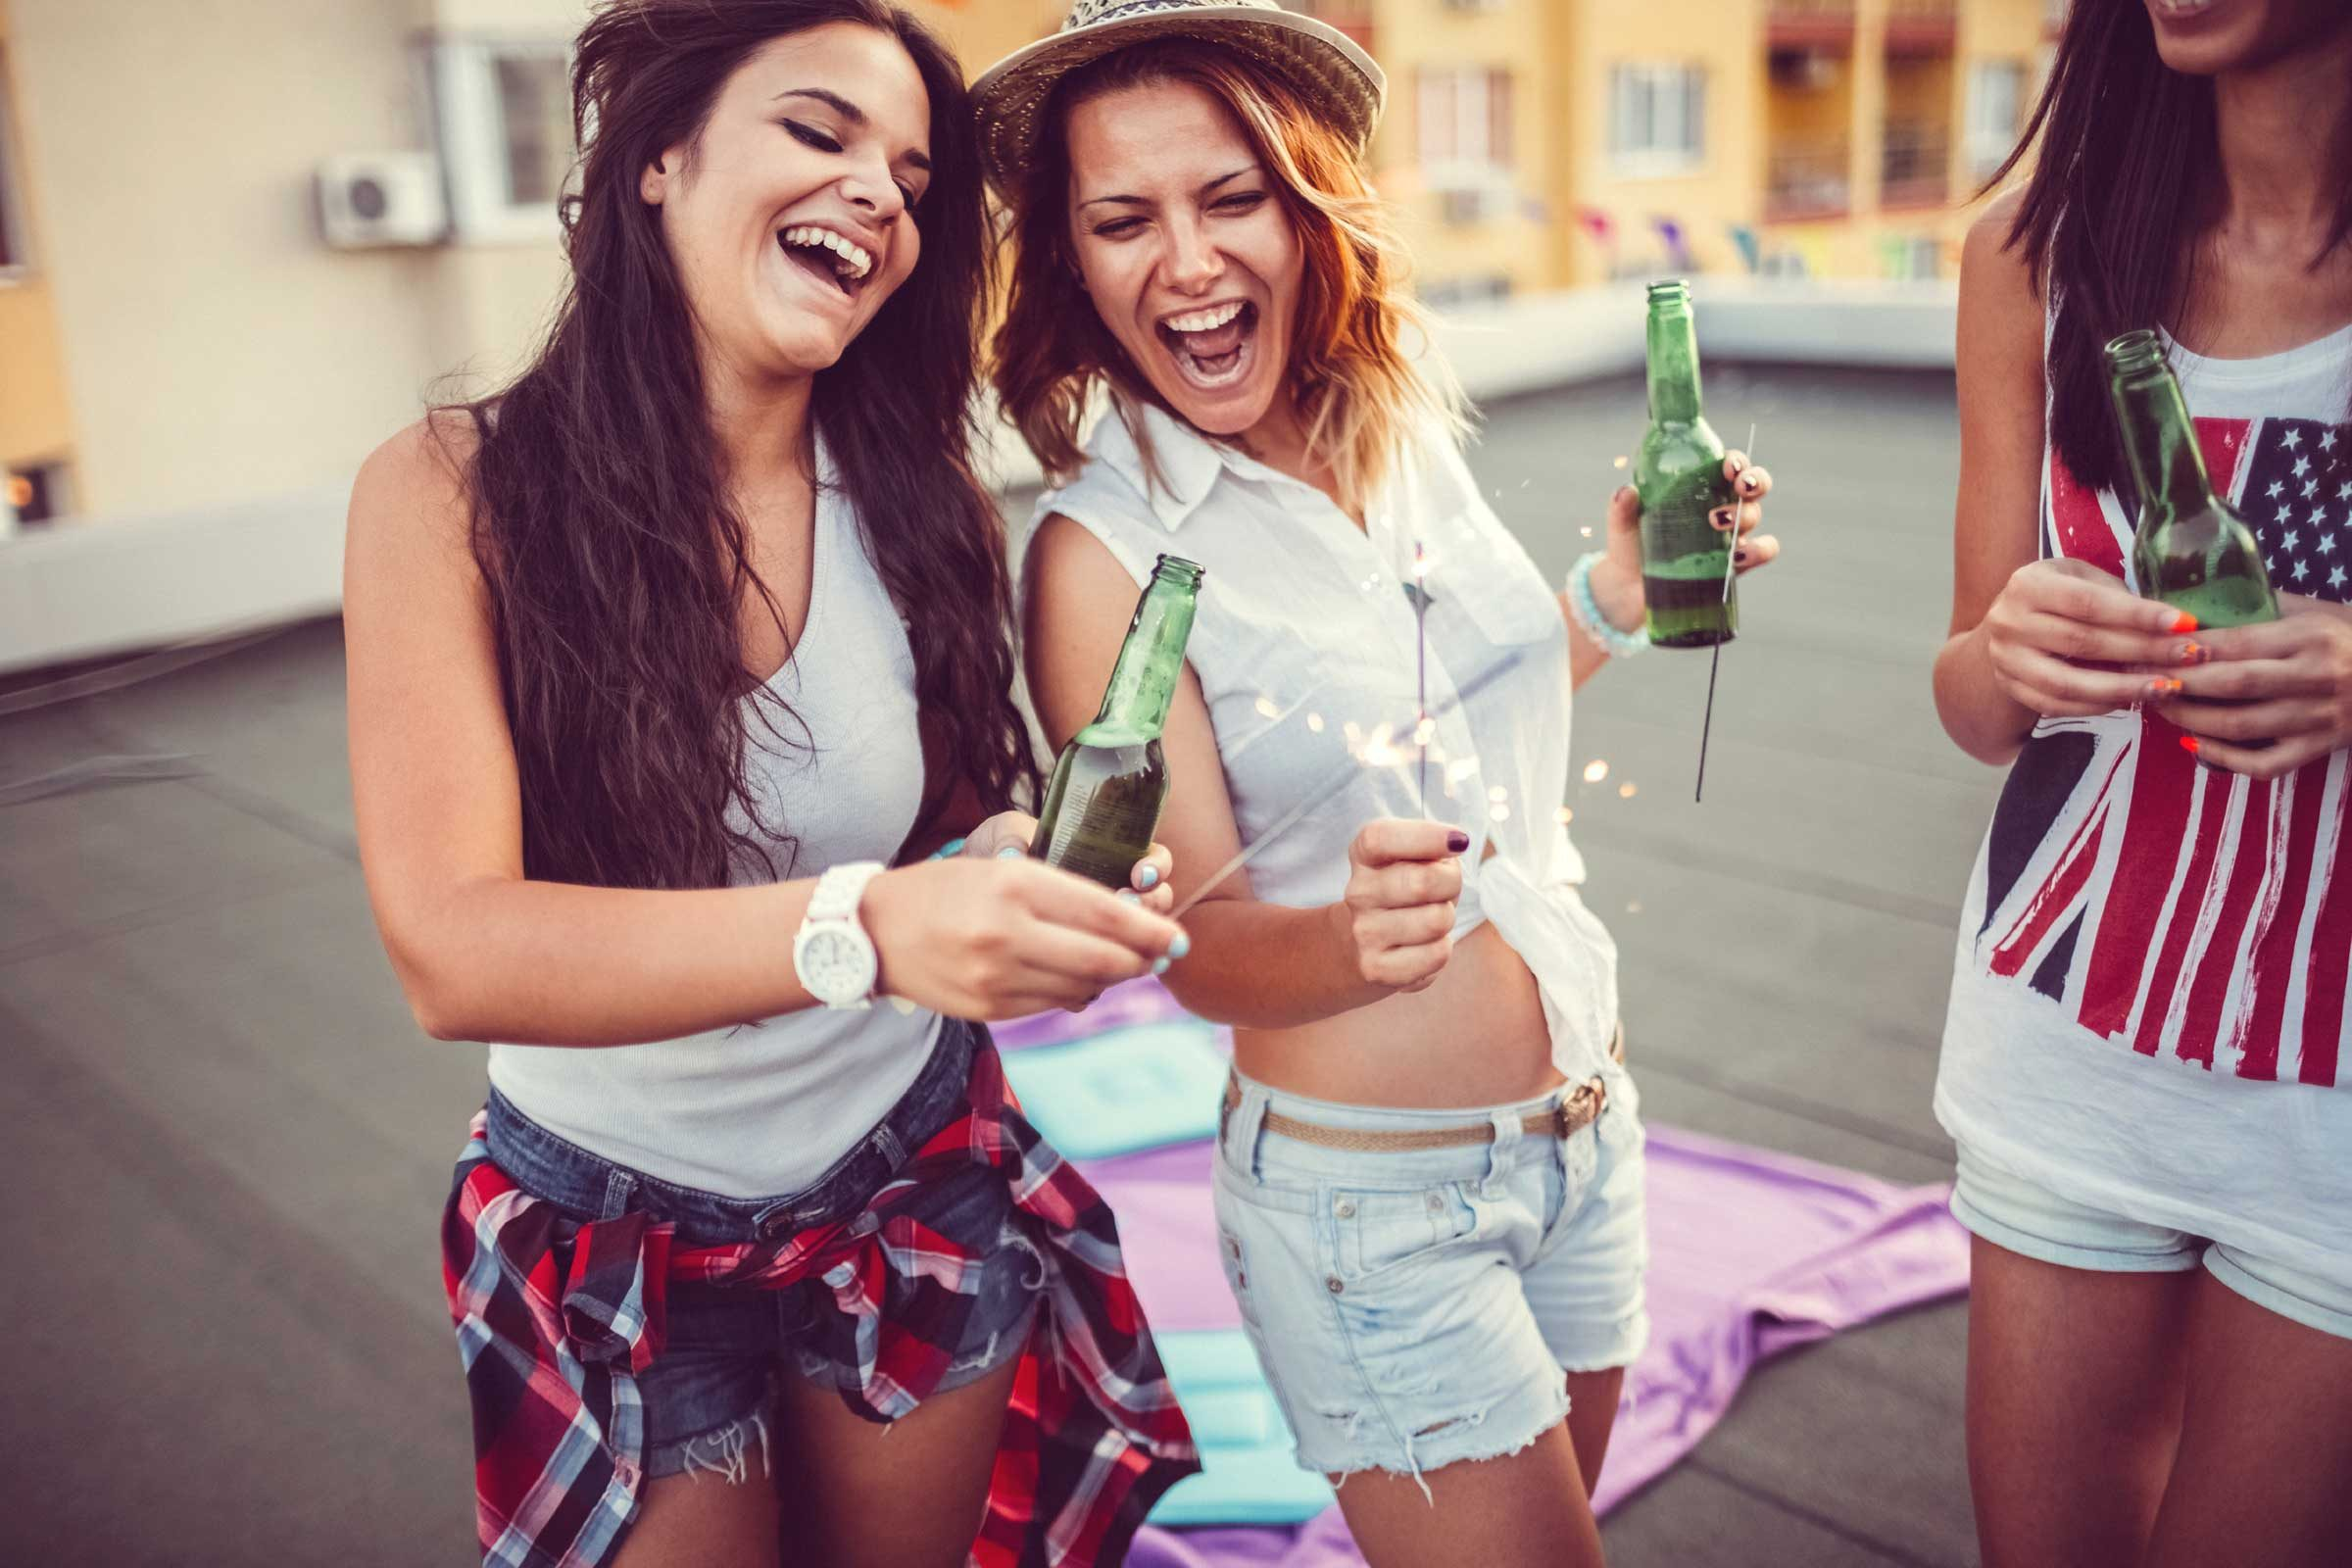 Binge Drinking Signs: Are You Drinking Too Much? | Reader's Digest